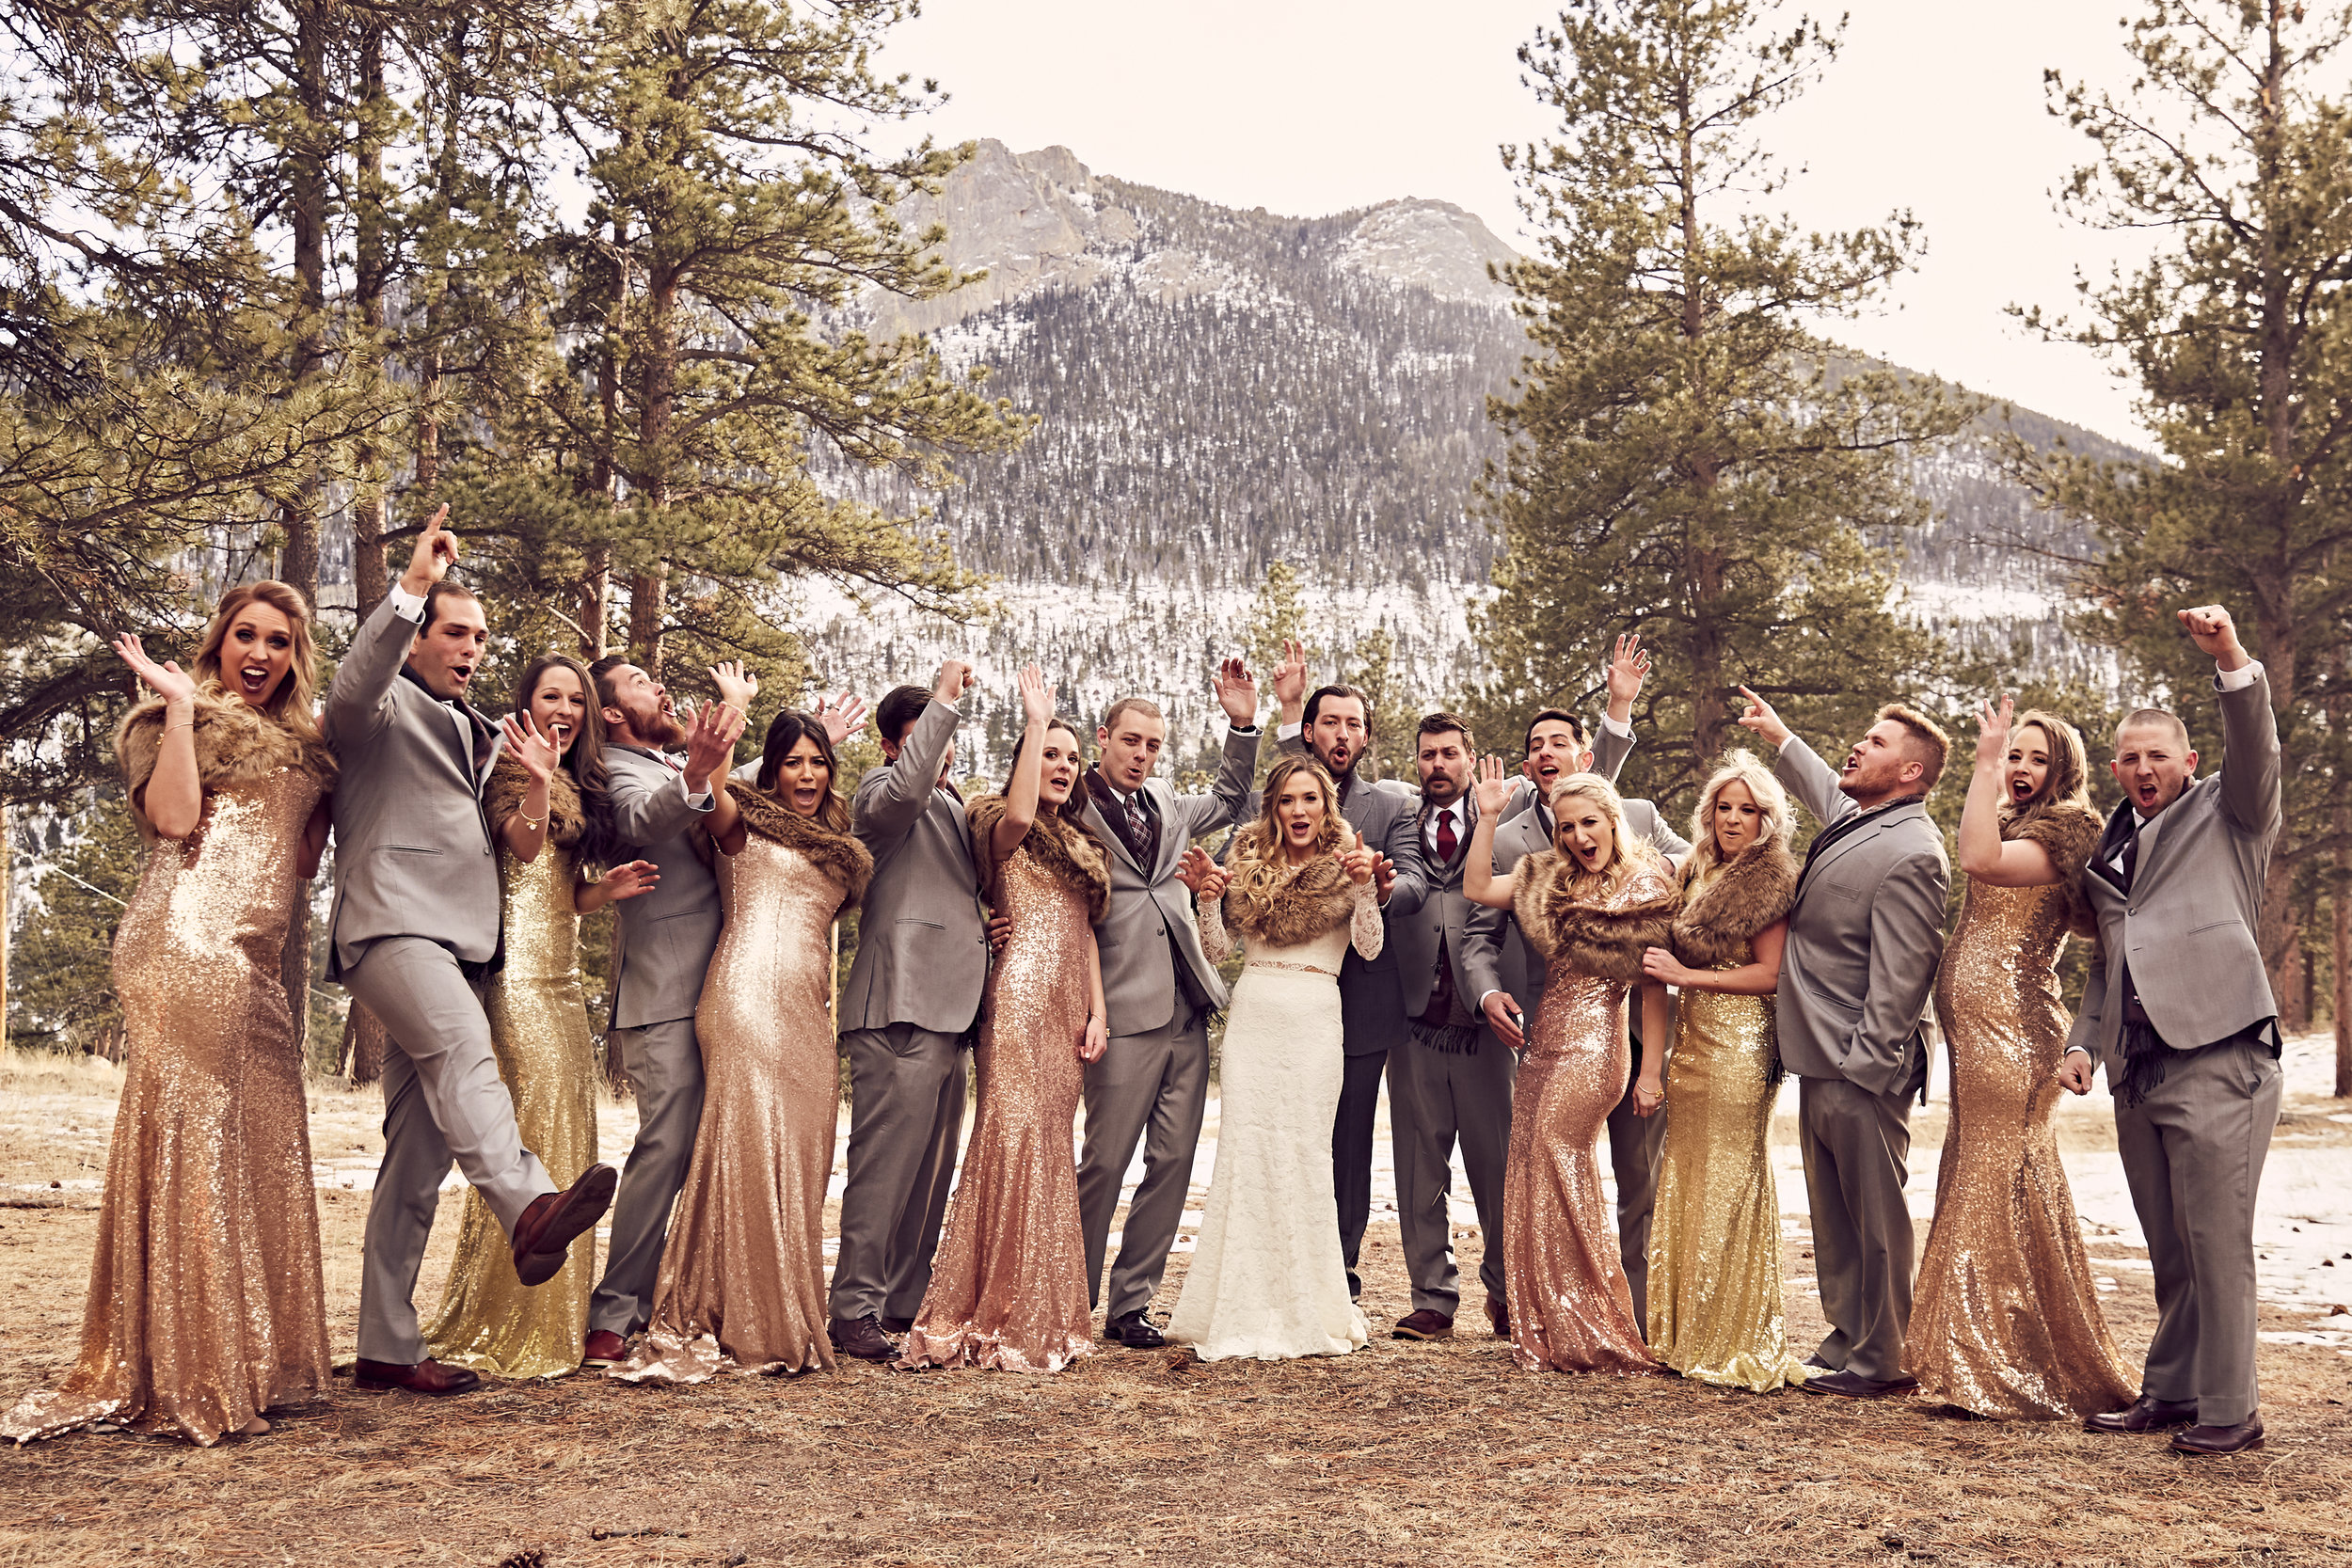 Della Terra Mountain Chateau Winter Wedding - Winter Wedding | Sparkly Bridesmaid Dresses | Fur | Fire | Groomsmen Scarfs | Red Velvet | Snow